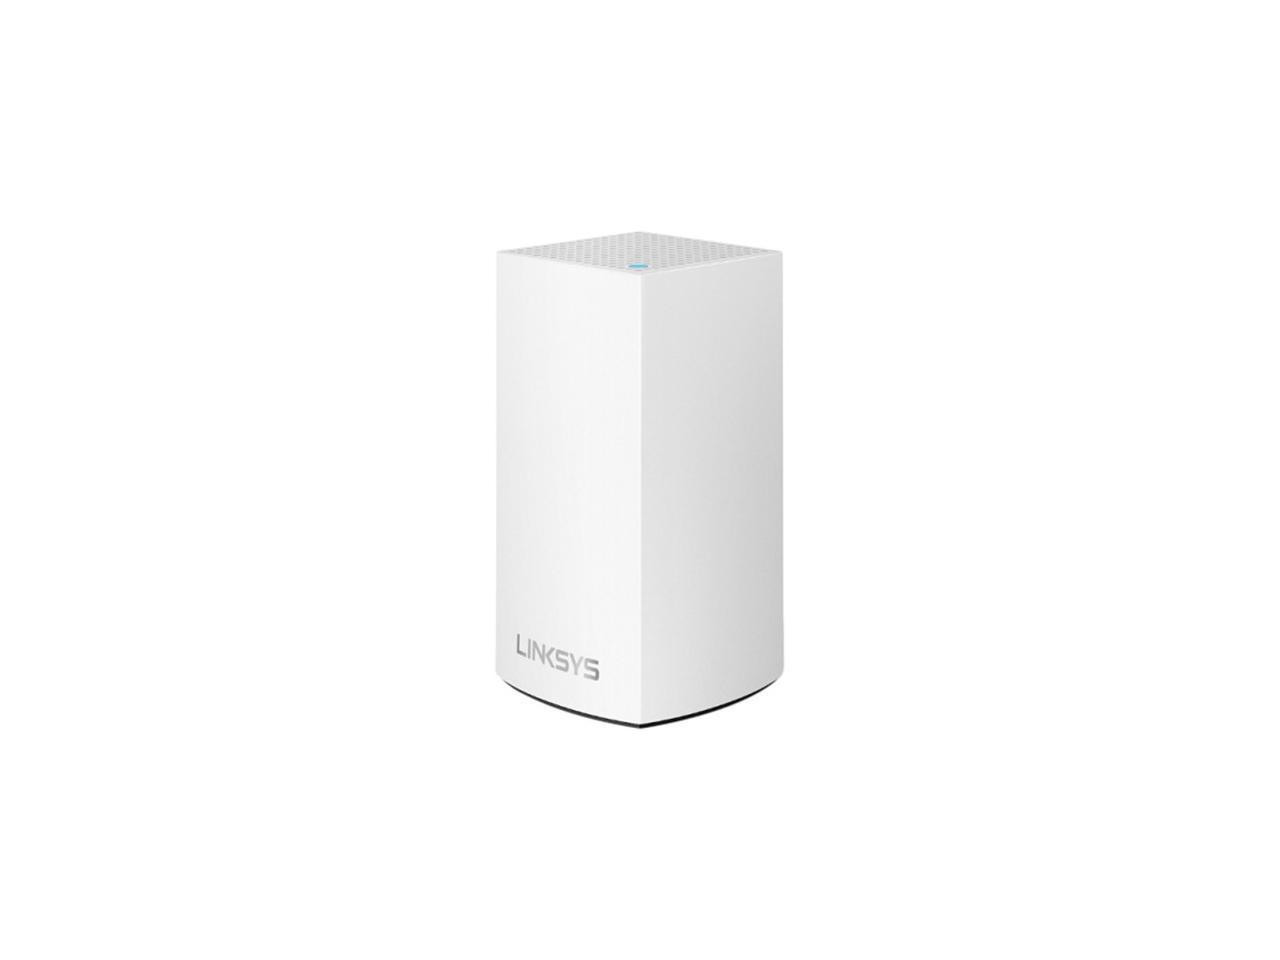 Linksys Velop Intelligent Mesh WiFi System, WHW0102; 1-Pack White (AC2600); Wi-Fi Technology: Dual-Band AC1300 (867 + 400 Mbps)‡ with MU- MIMO and 256 QAM; Network Standards: 802.11b/802.11a/802.11g/802.11n/ 802.11ac/ Wi-Fi Speed: AC1300 (867 + 400 Mbps); Wi-Fi Bands: 2.4Ghz + 5GHz; Wi-Fi Range: up - imaginea 1